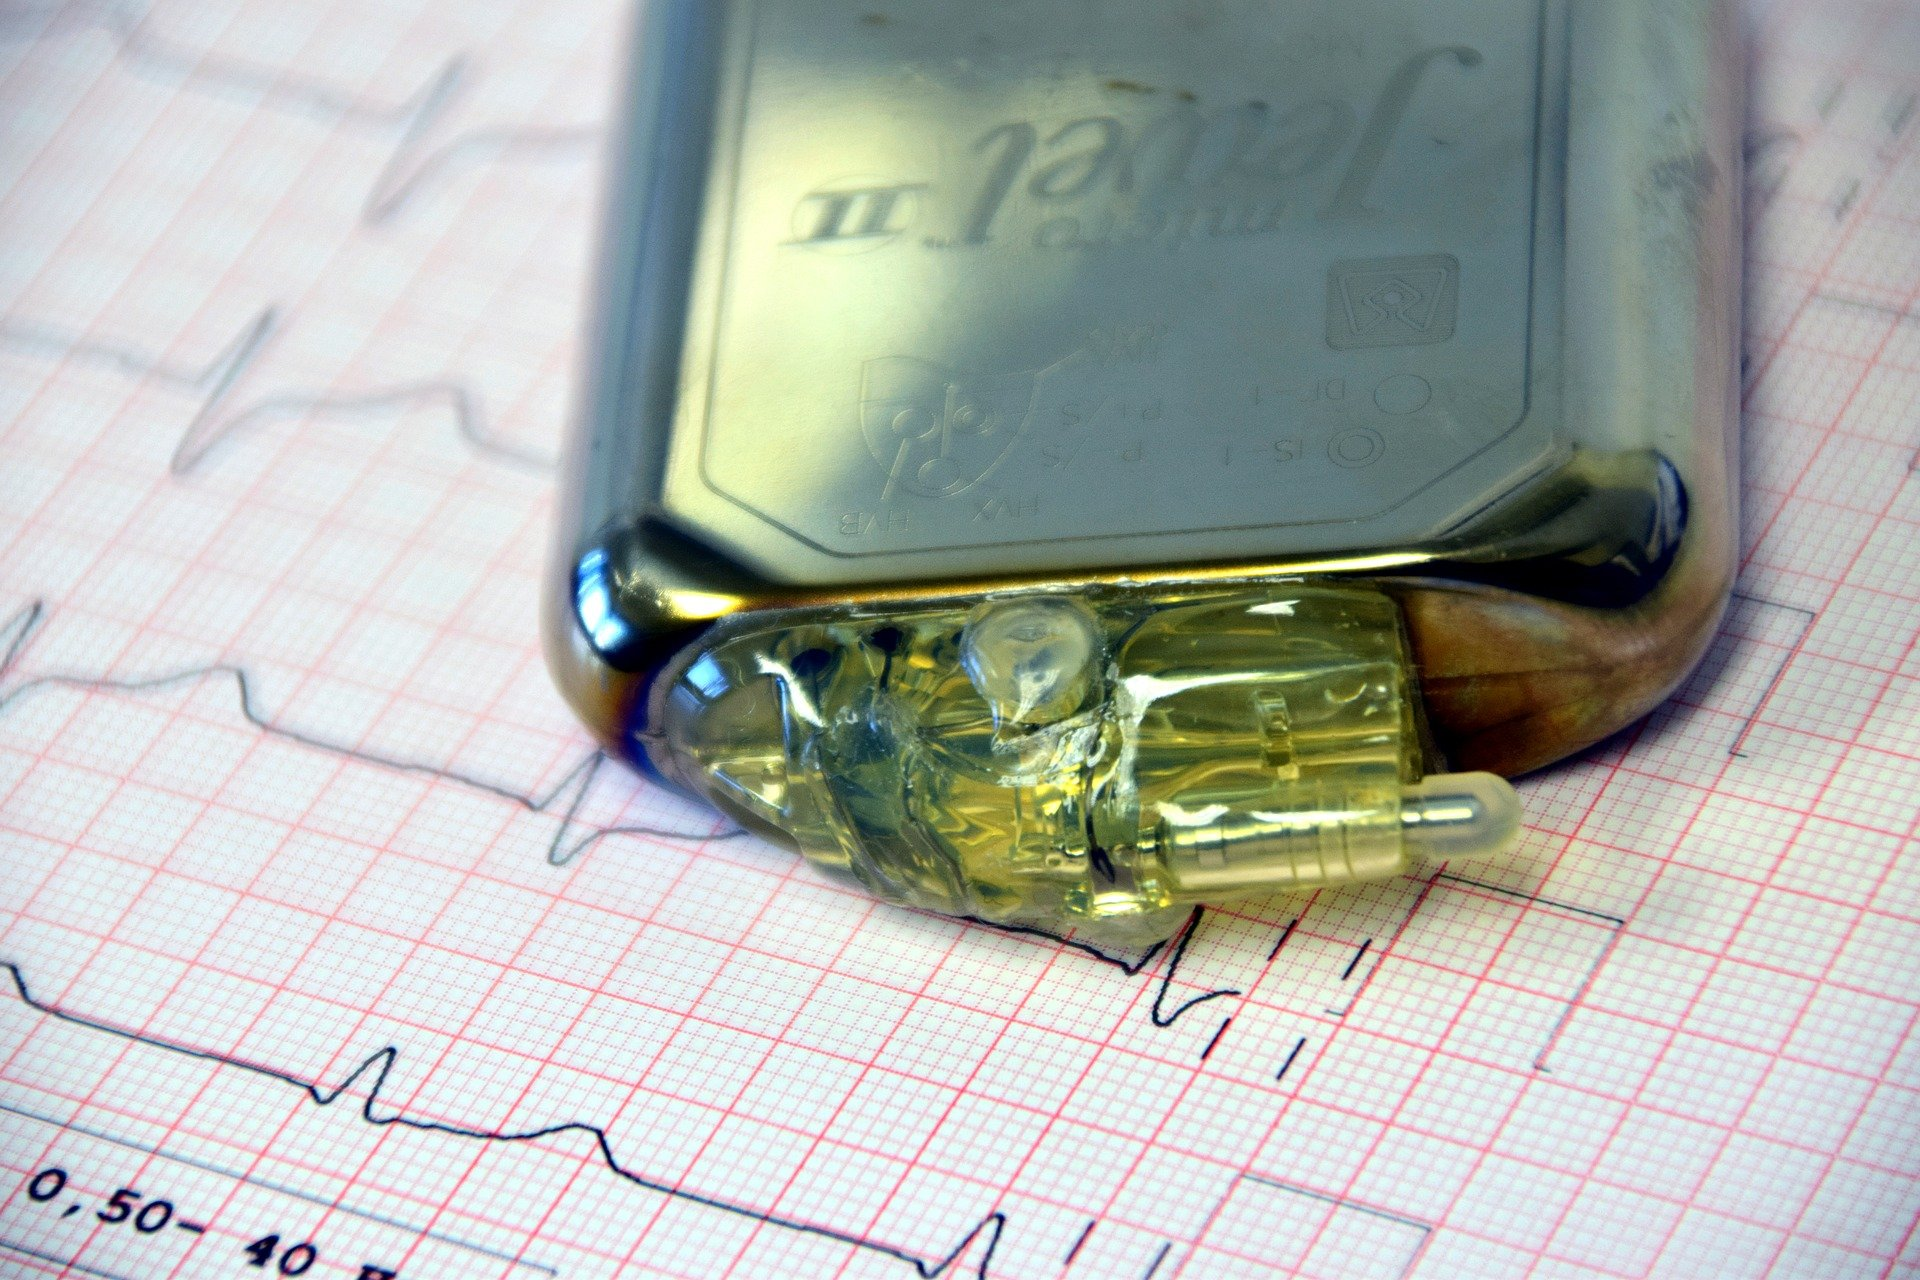 465,000 Pacemakers Recalled Due to Security Vulnerabilities